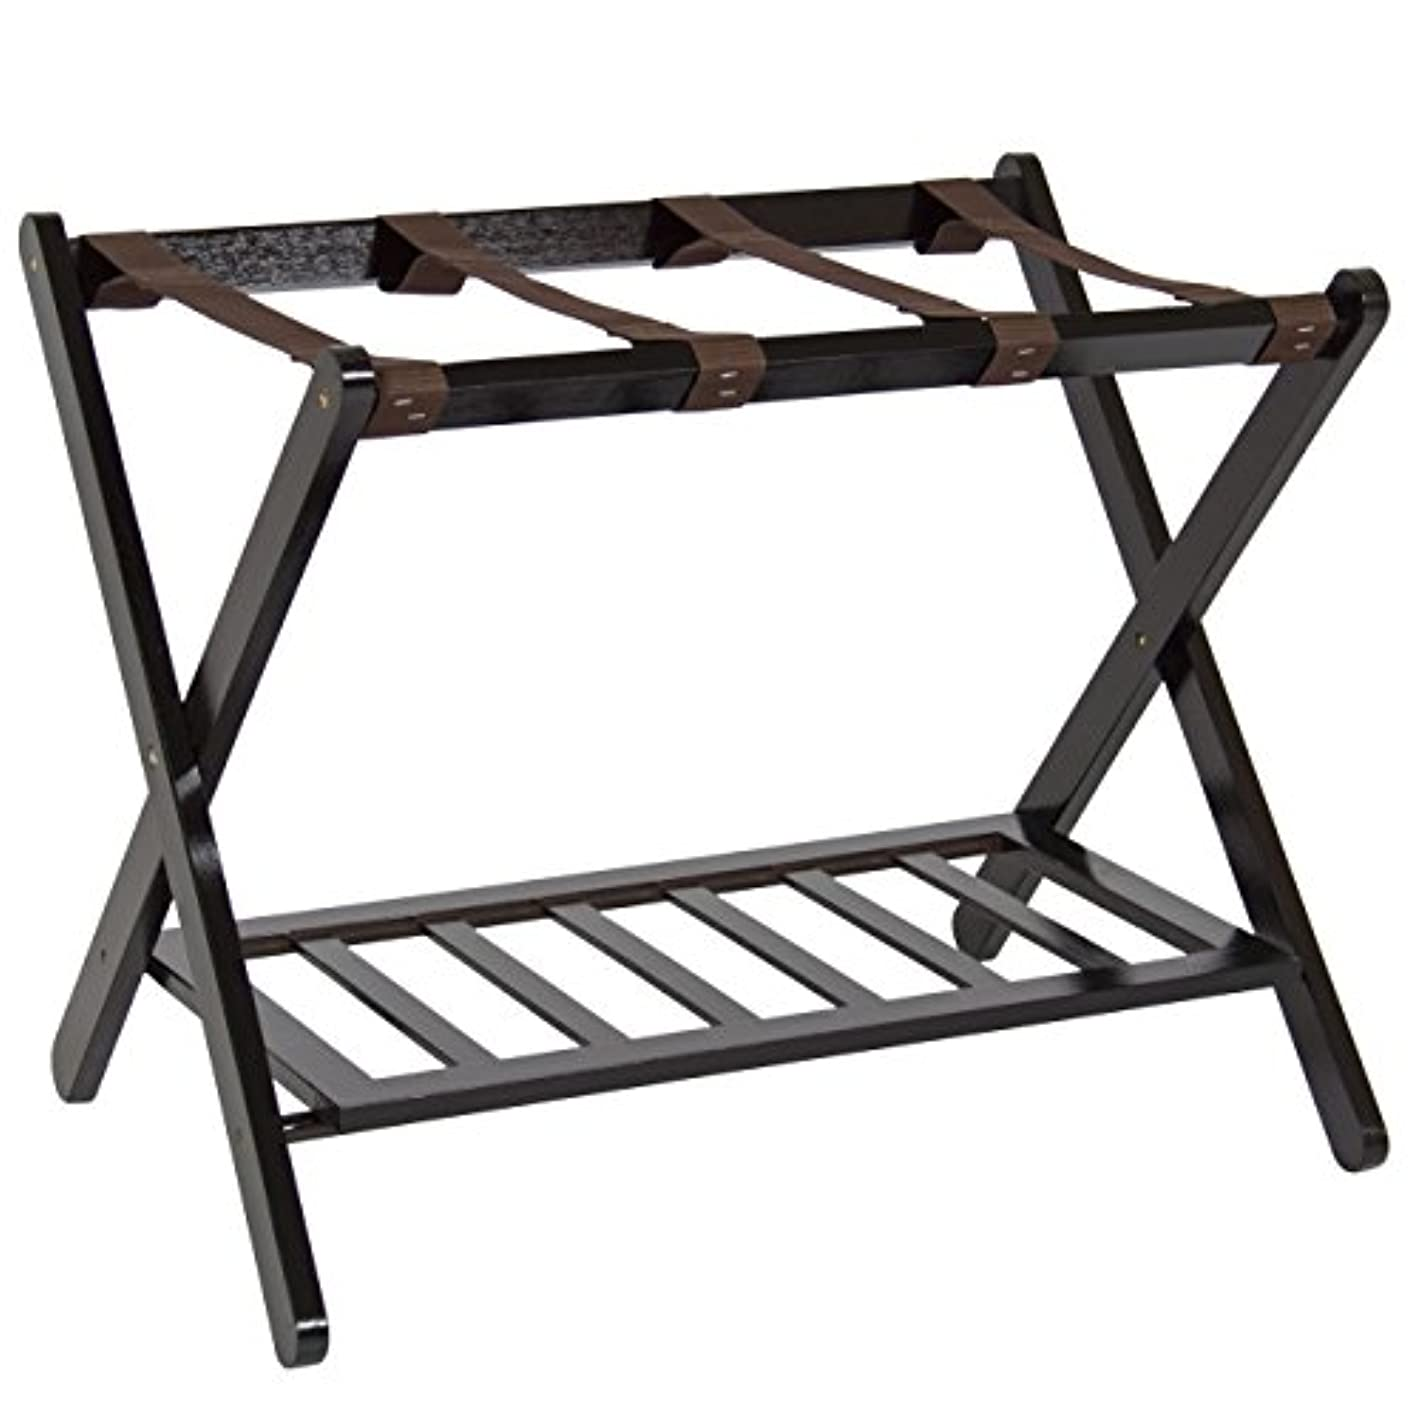 Best Choice Products 110lb Capacity Wood Folding Luggage Rack for Home, Bedroom, Hotel w/Shelf, Nylon Straps - Brown ikppfa5380852